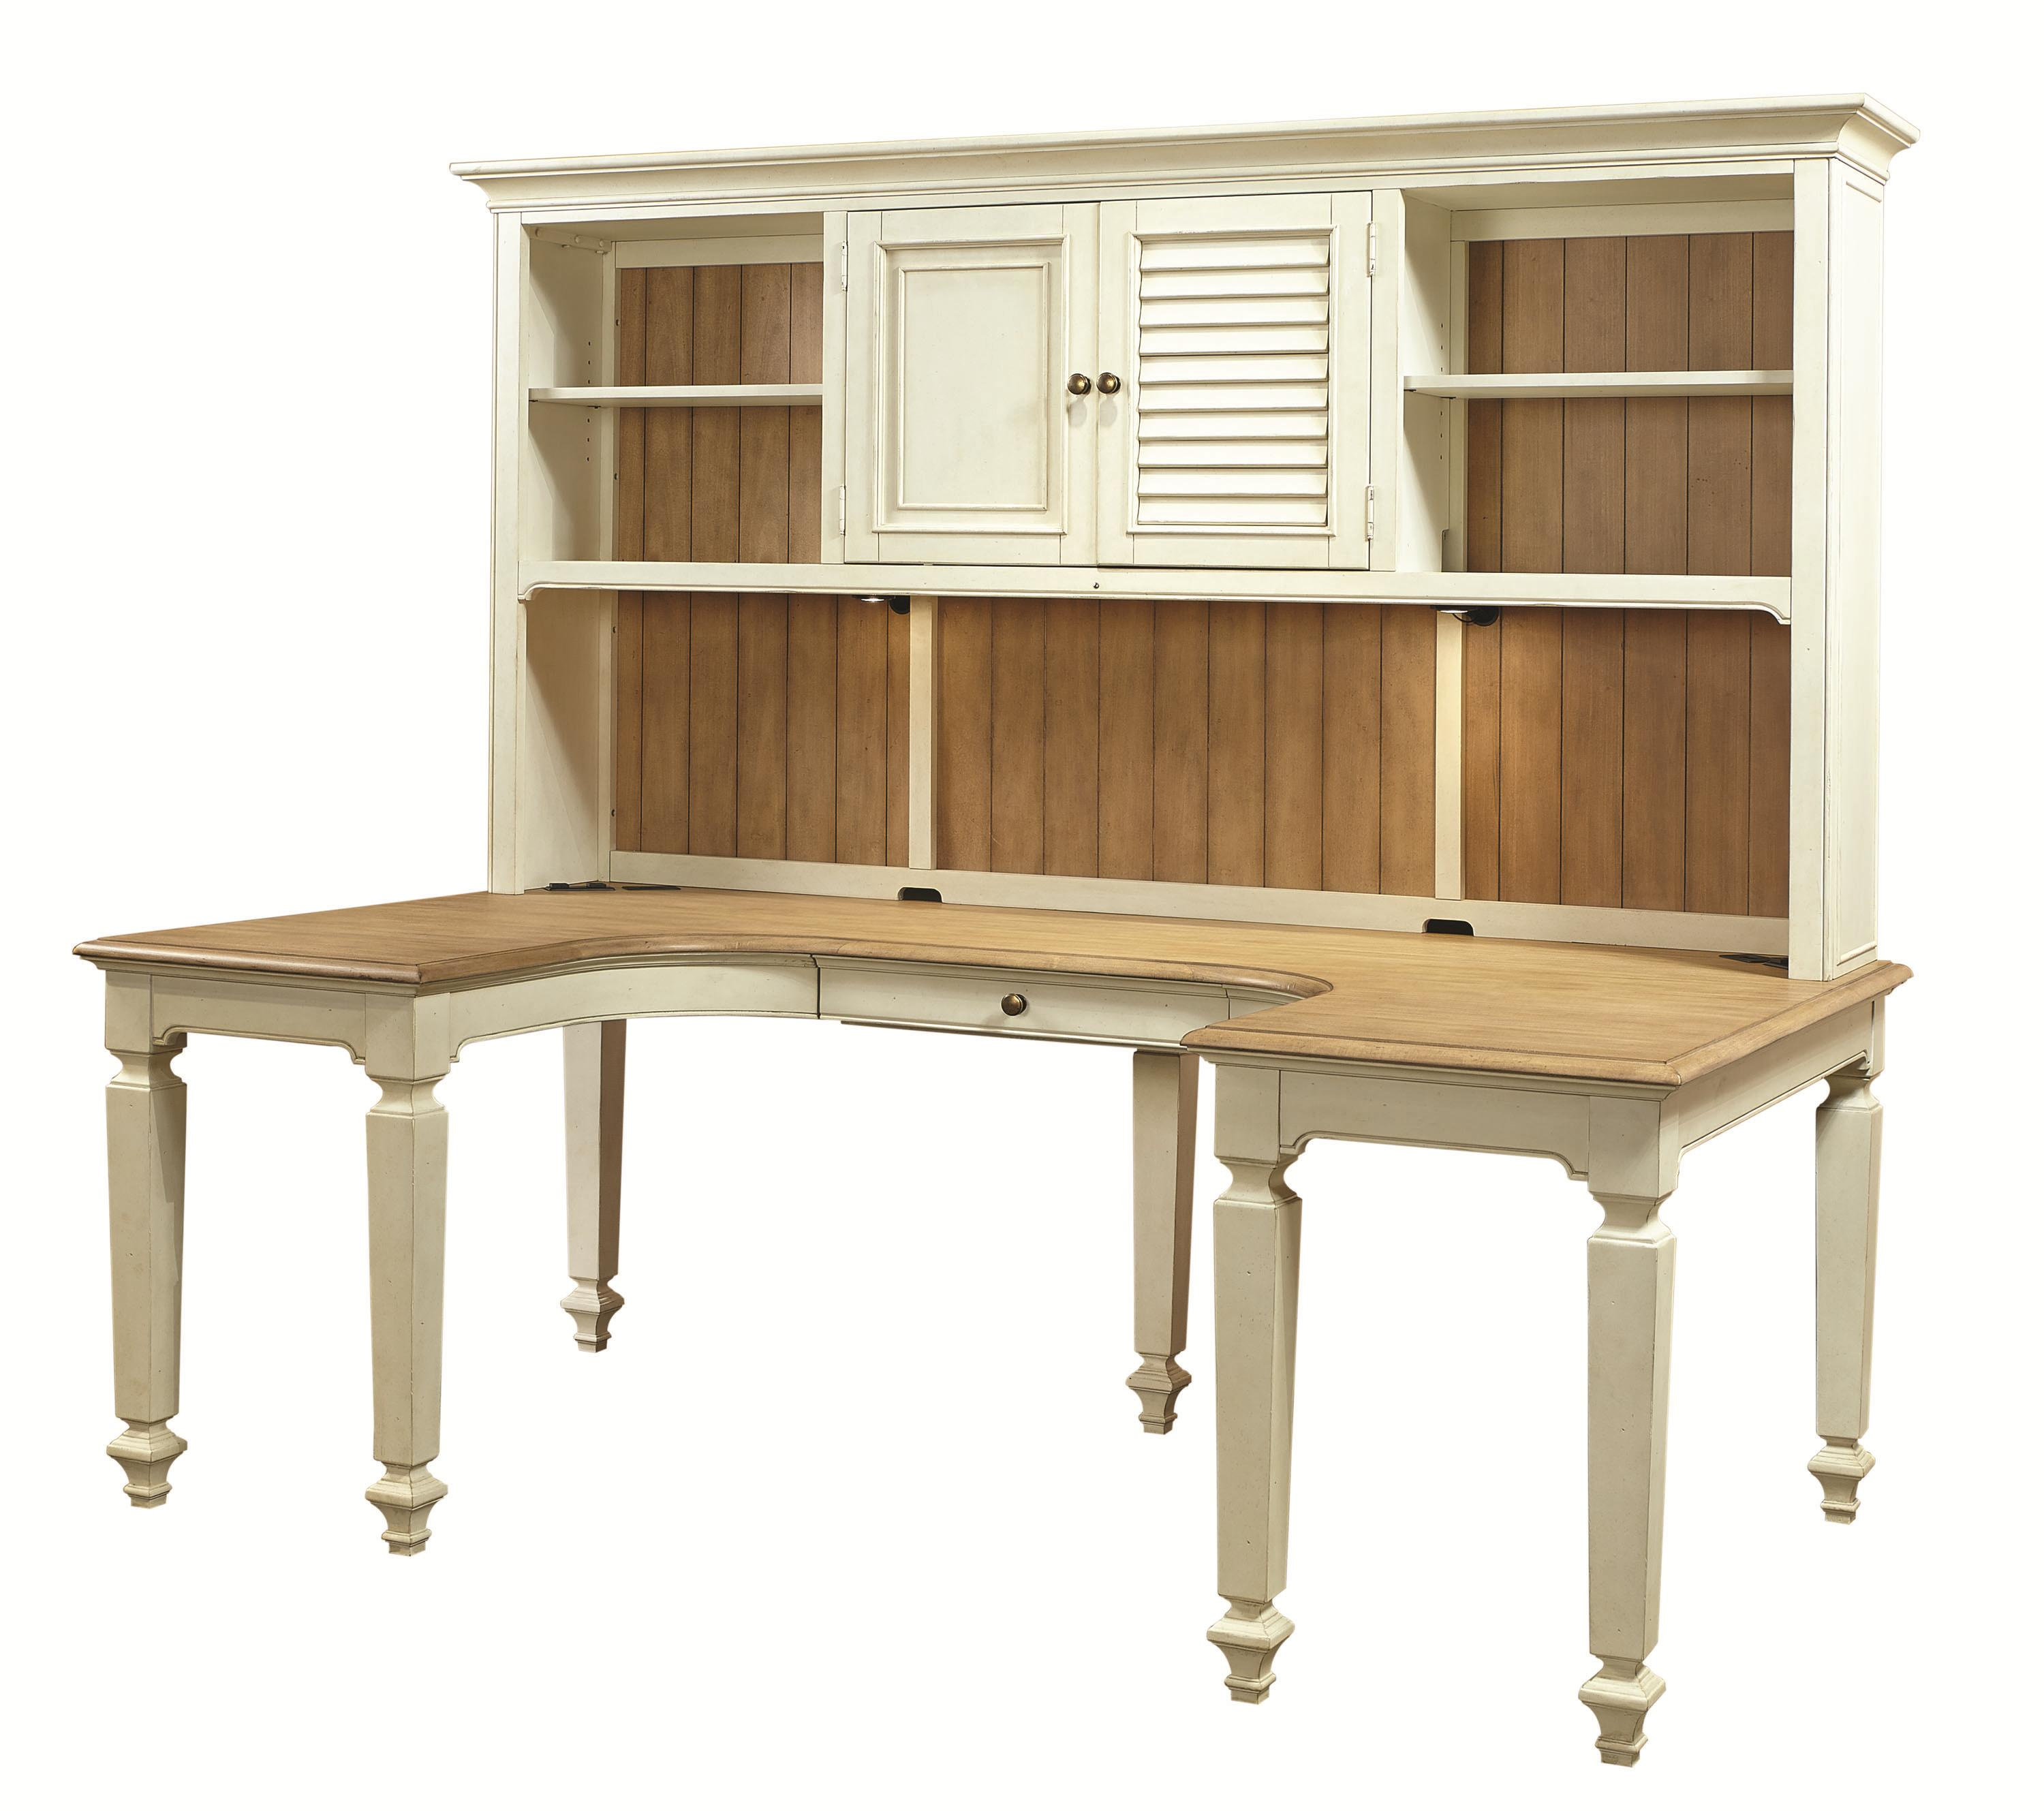 ushaped desk and hutch with 3 shelves and reversible door panels